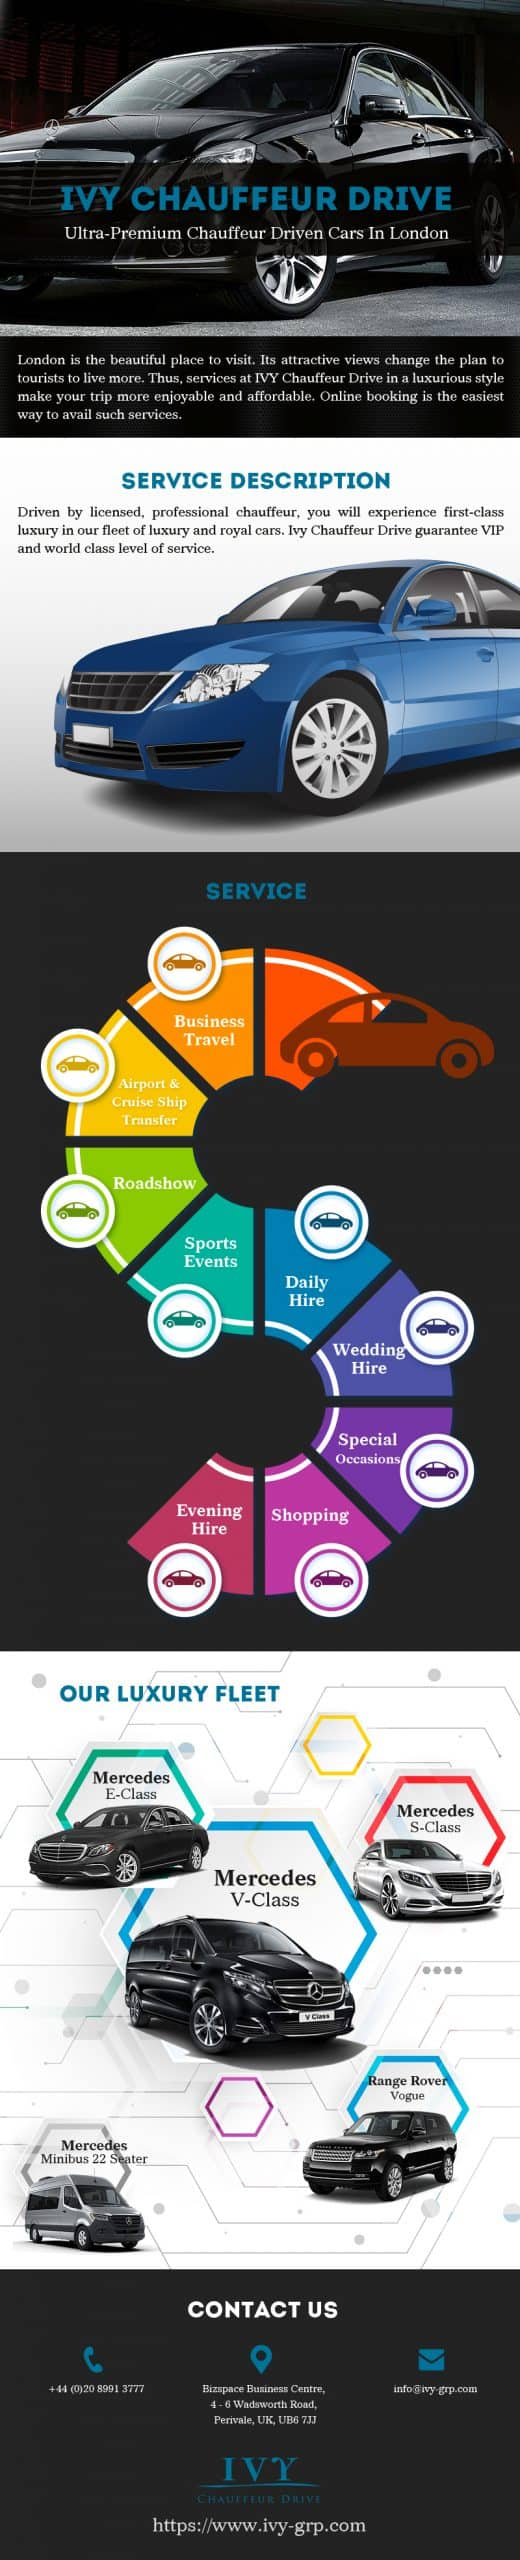 ivy-chauffeur-drive-infographic